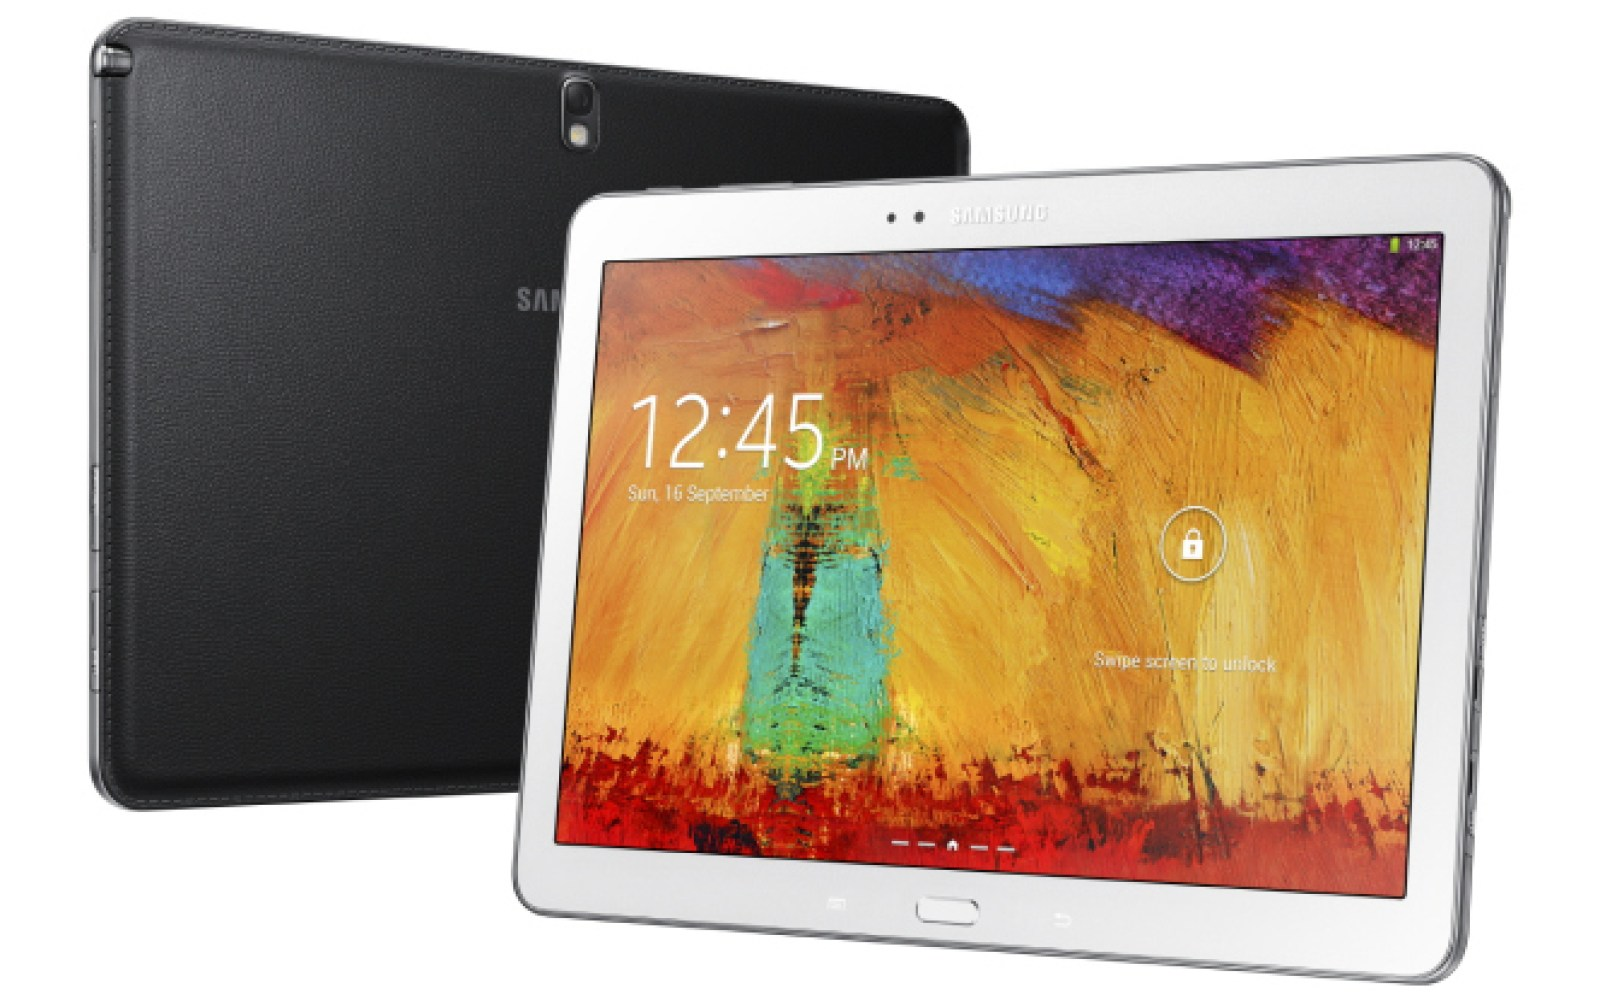 Android 4.4.2 now available for Galaxy Note 10.1 2014 Edition